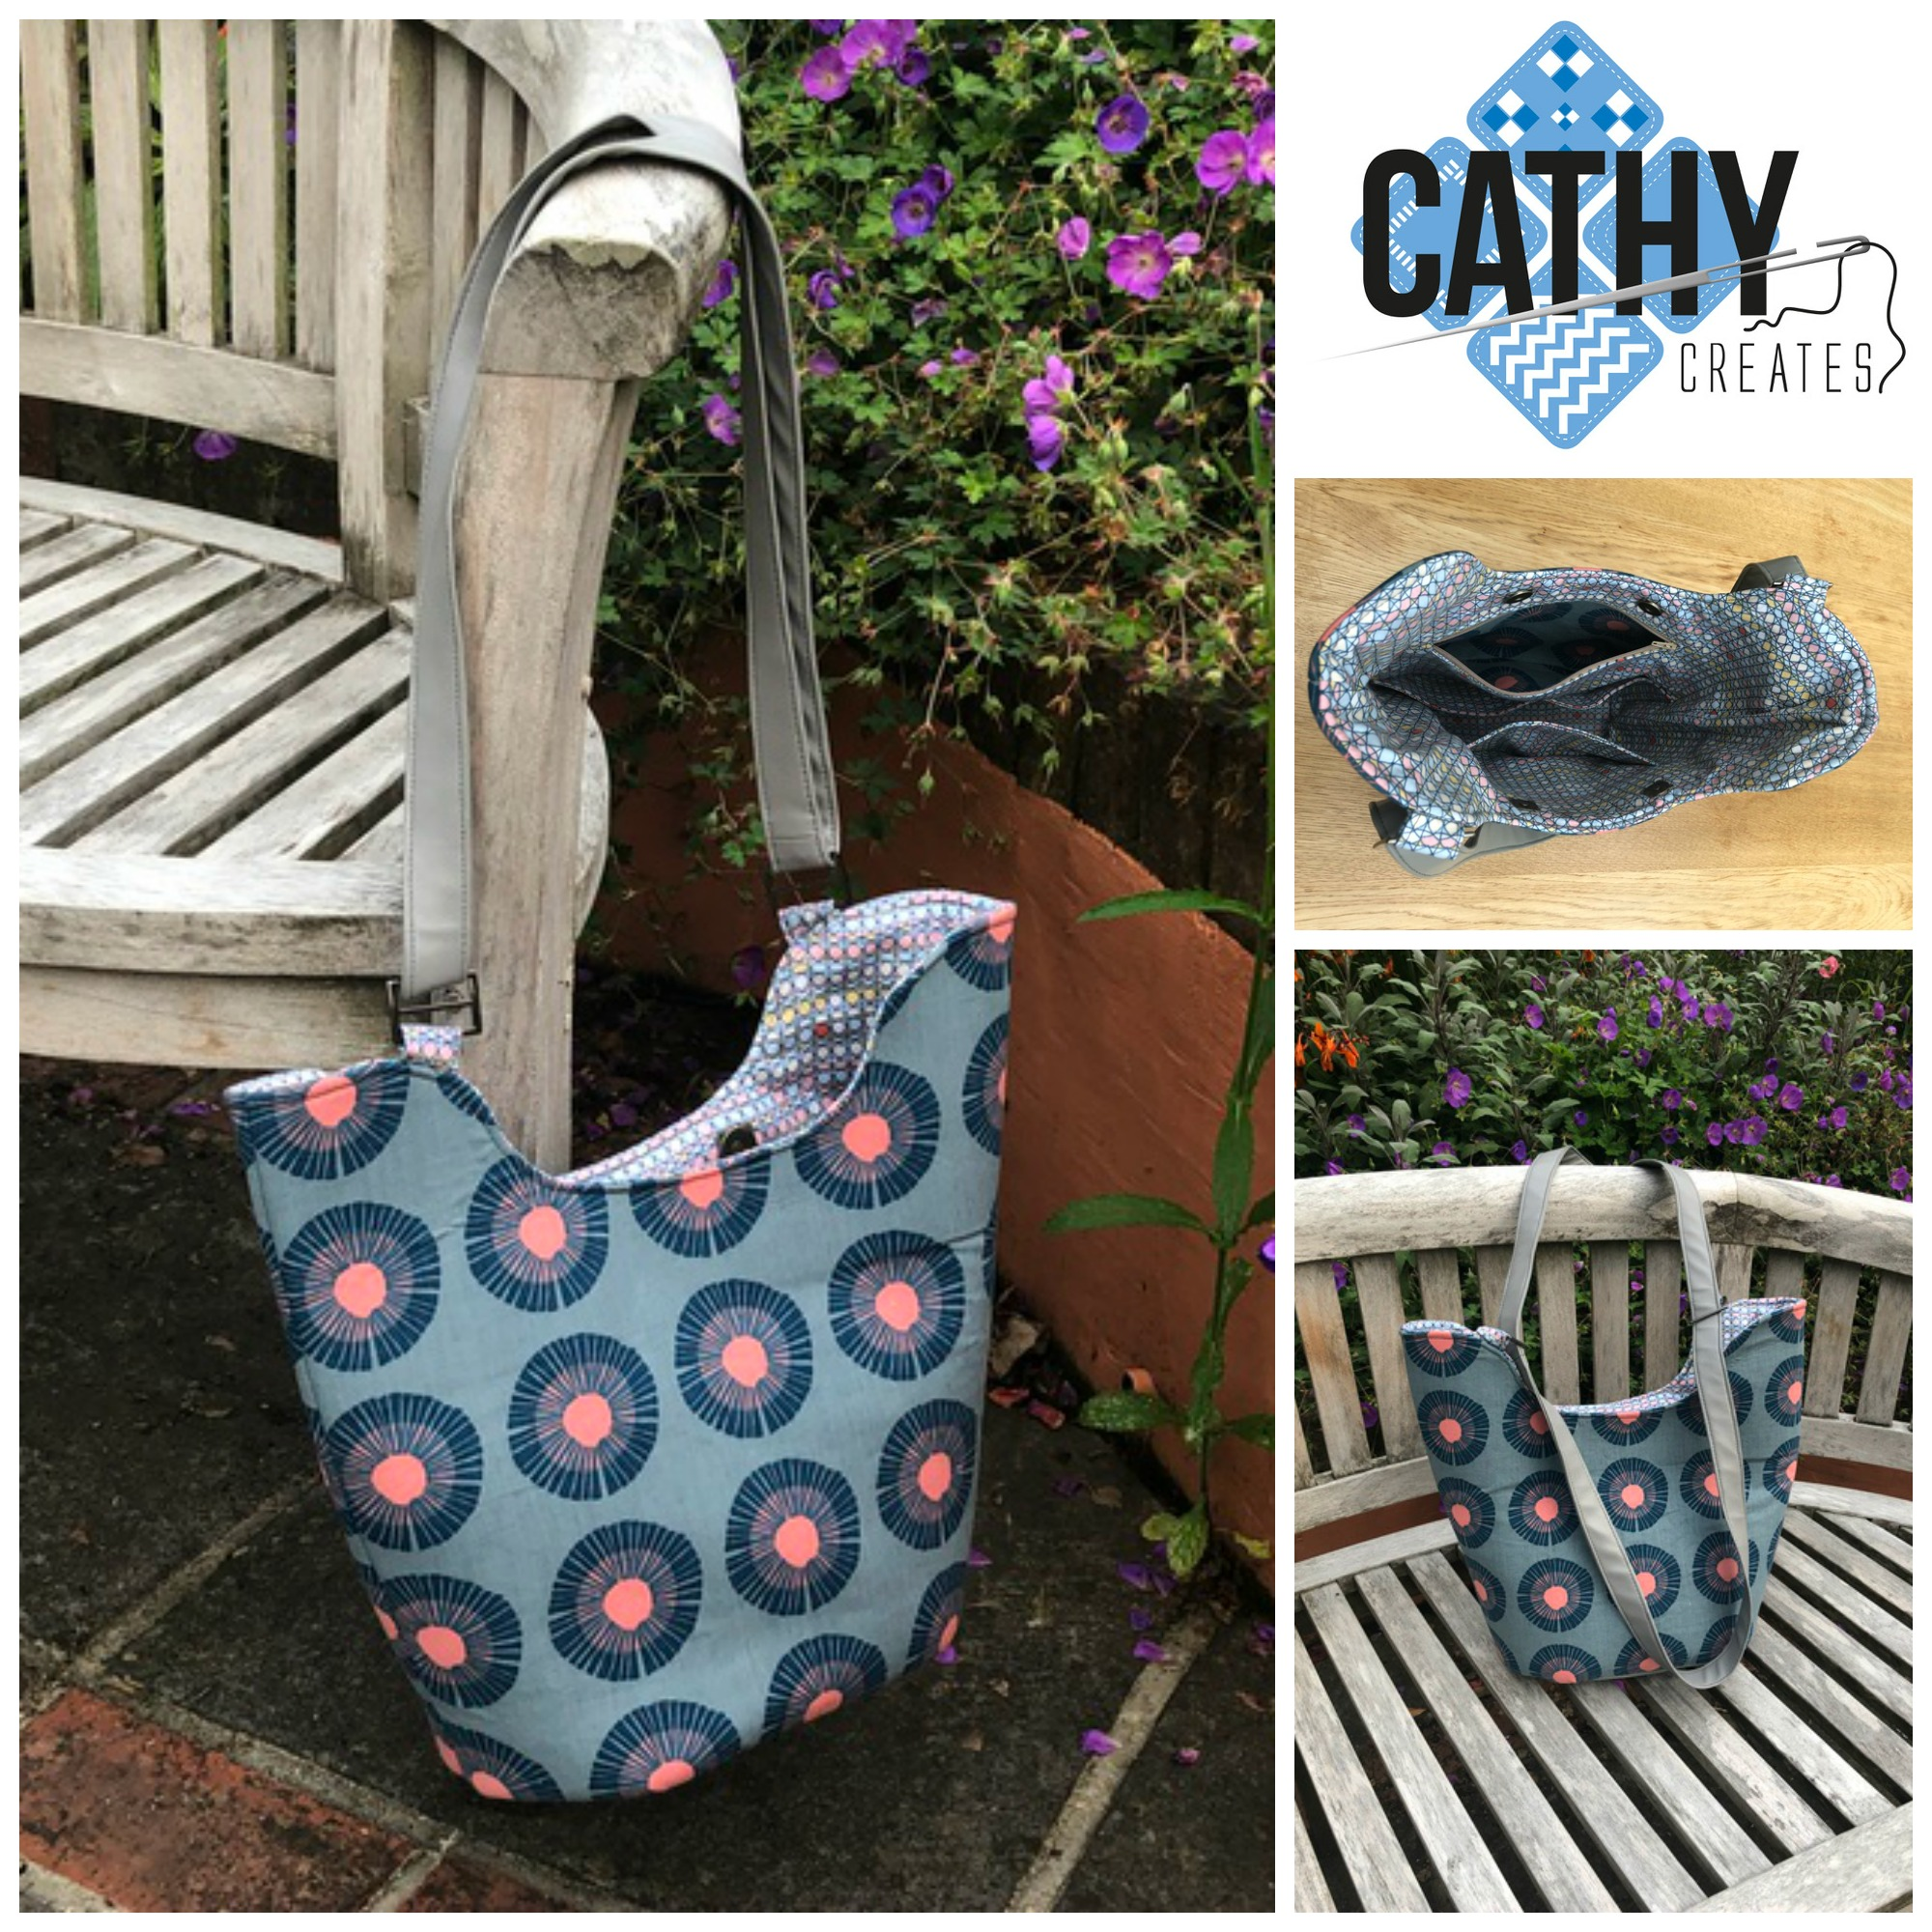 The Bucket Tote, made by Cathy Creates